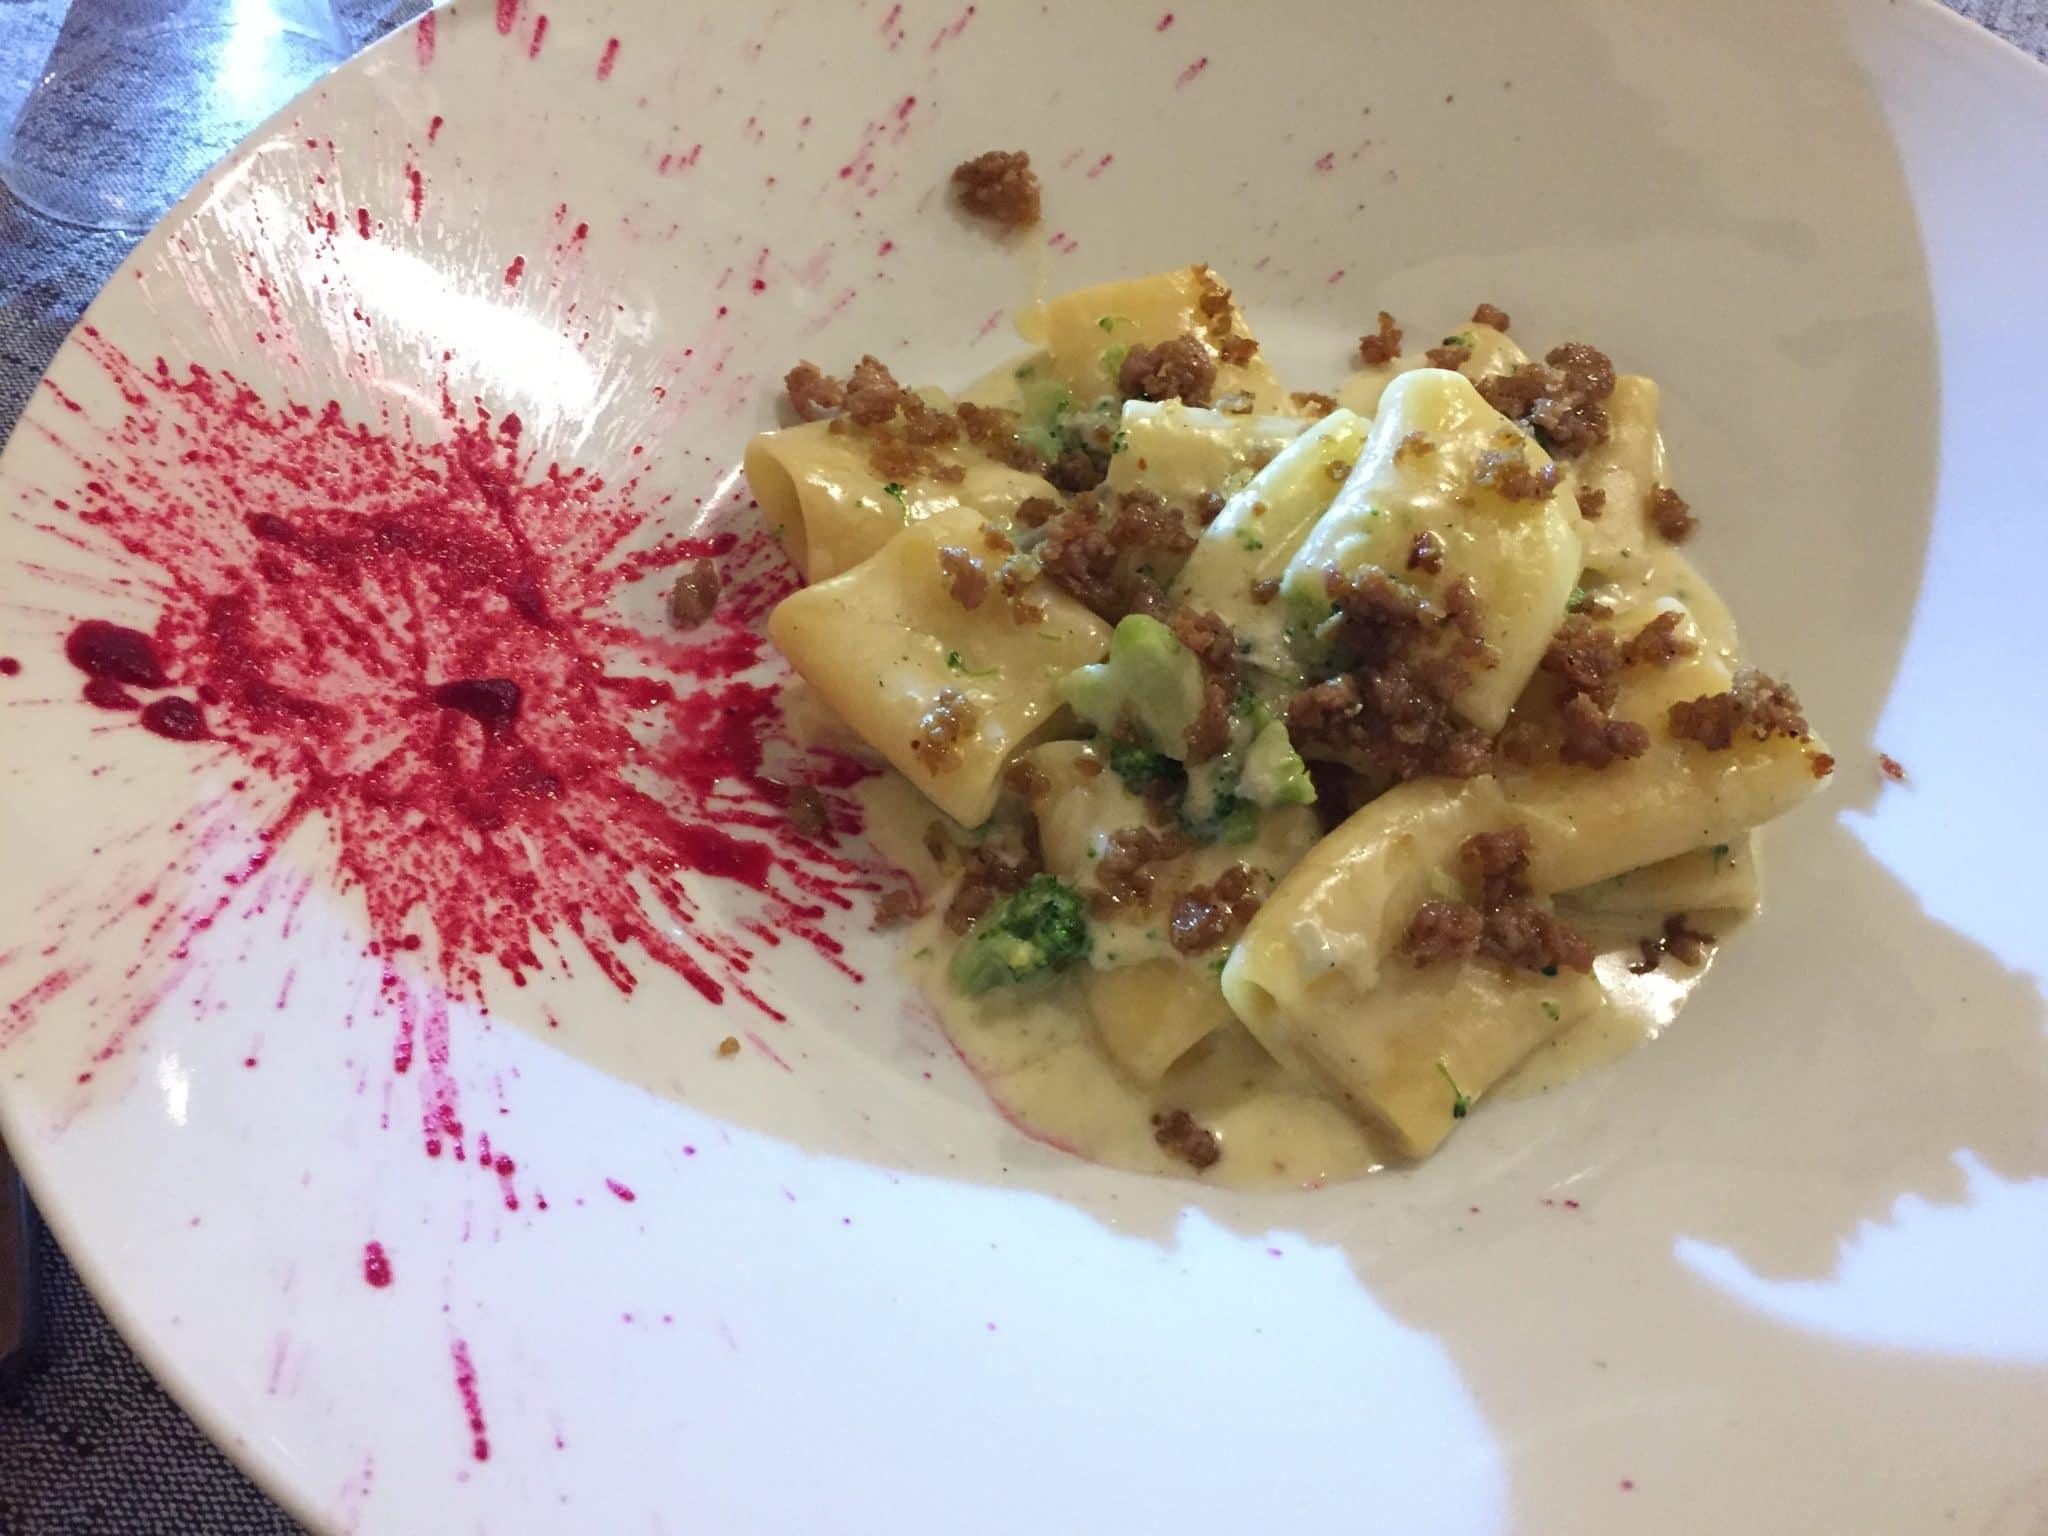 Deconstructed food how to make it at home on the gas the art whether its a symptom of too much communication boredom or earnest thought chefs have begun to experiment heavily with how they present their food forumfinder Gallery